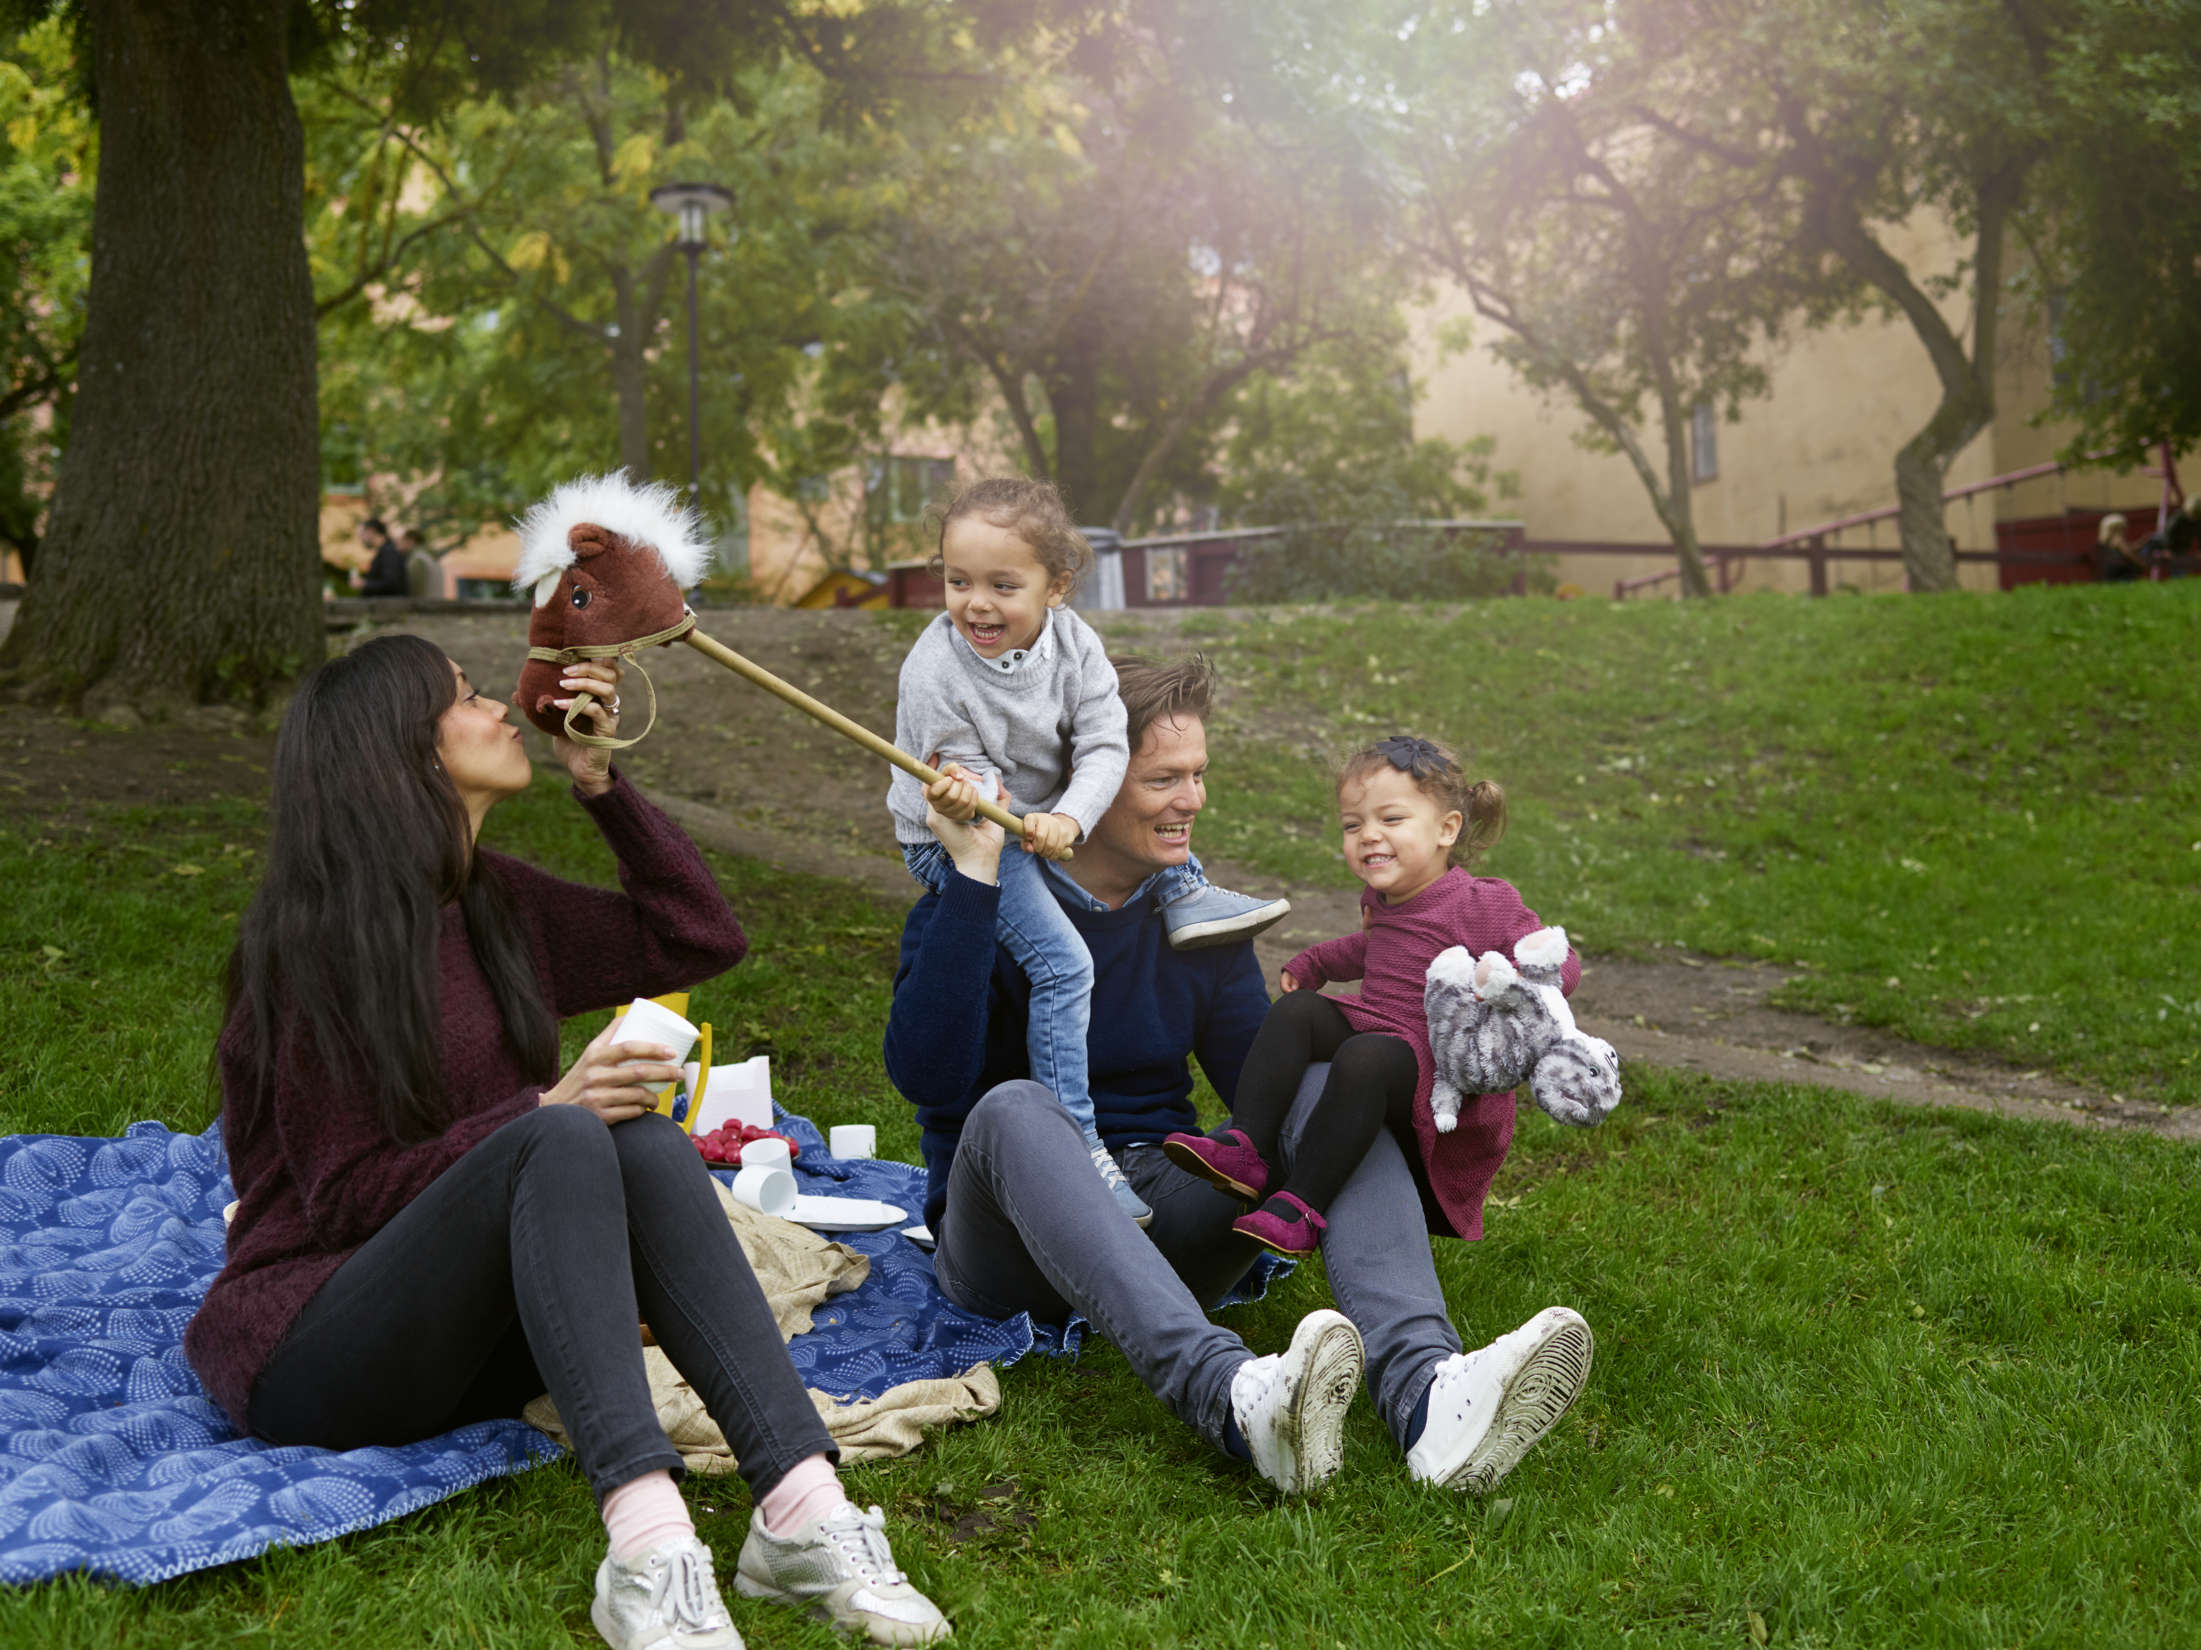 Family having picnic:Why You Should Consider More Than Your New Hire's Skills